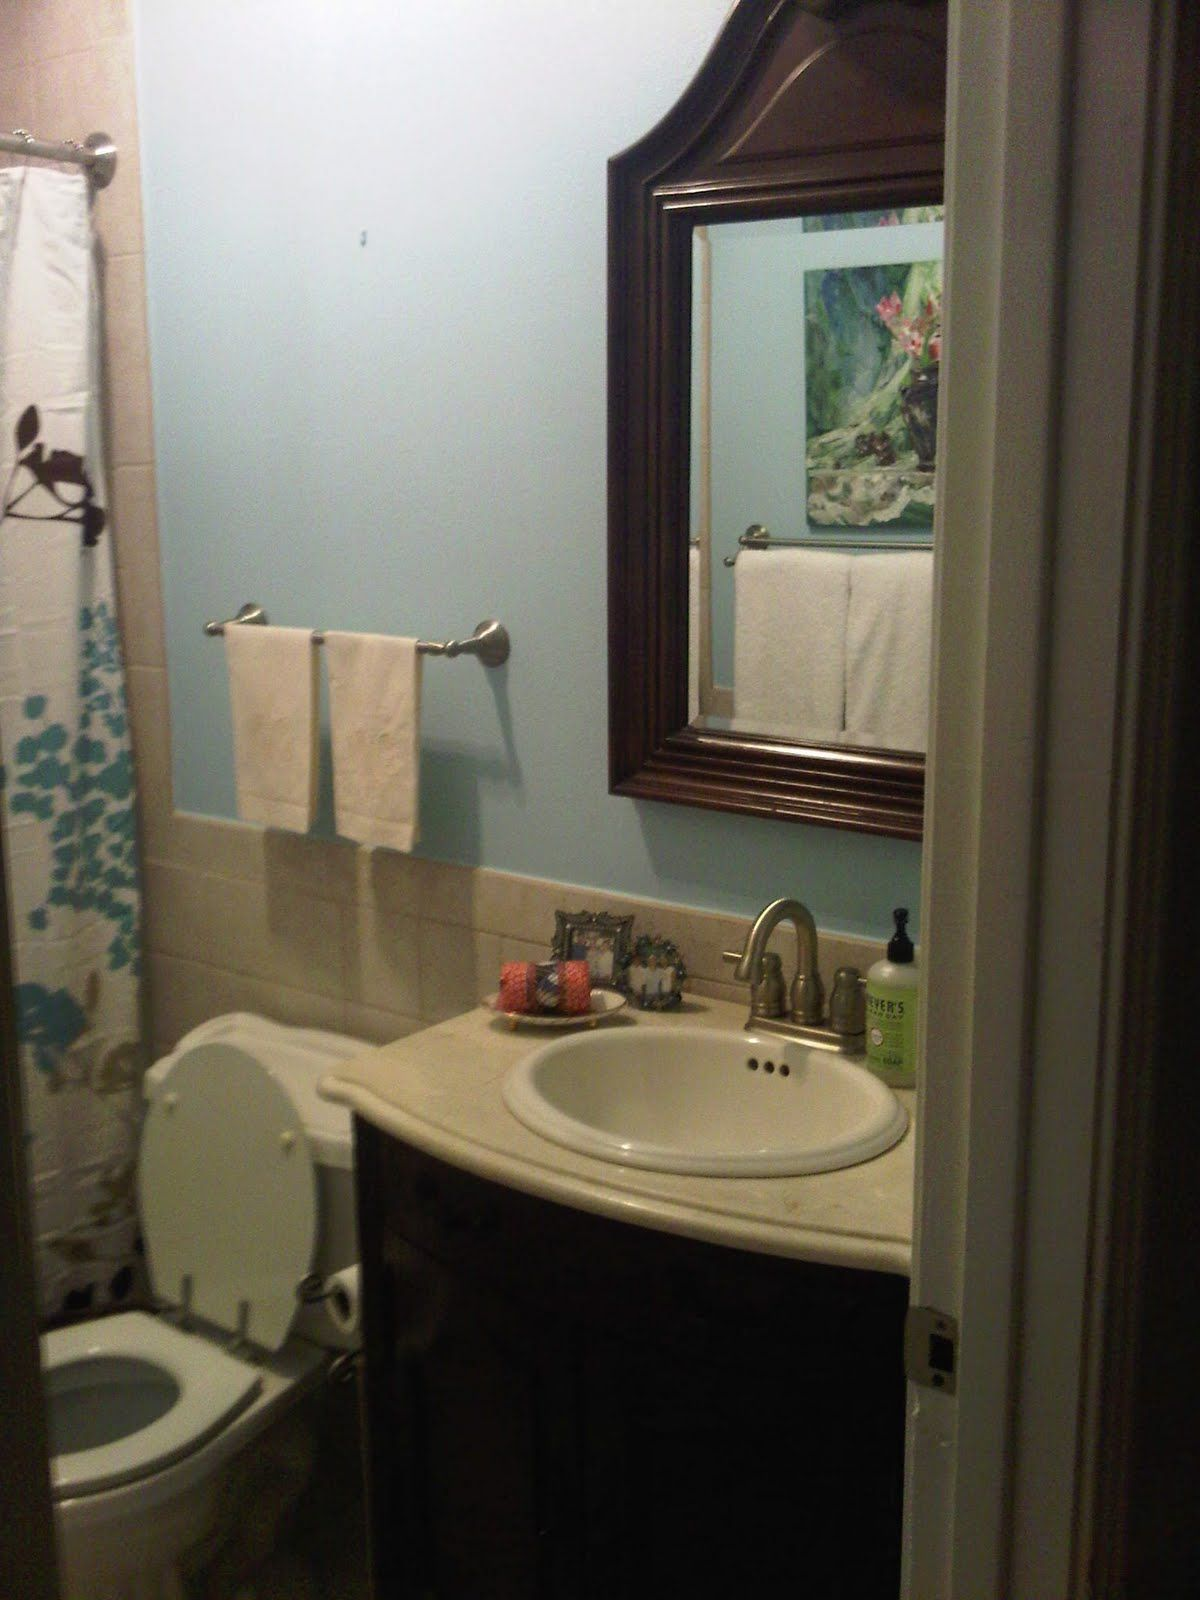 Small bathroom no window paint color google search bathroom ideas pinterest small What color to paint a small bathroom